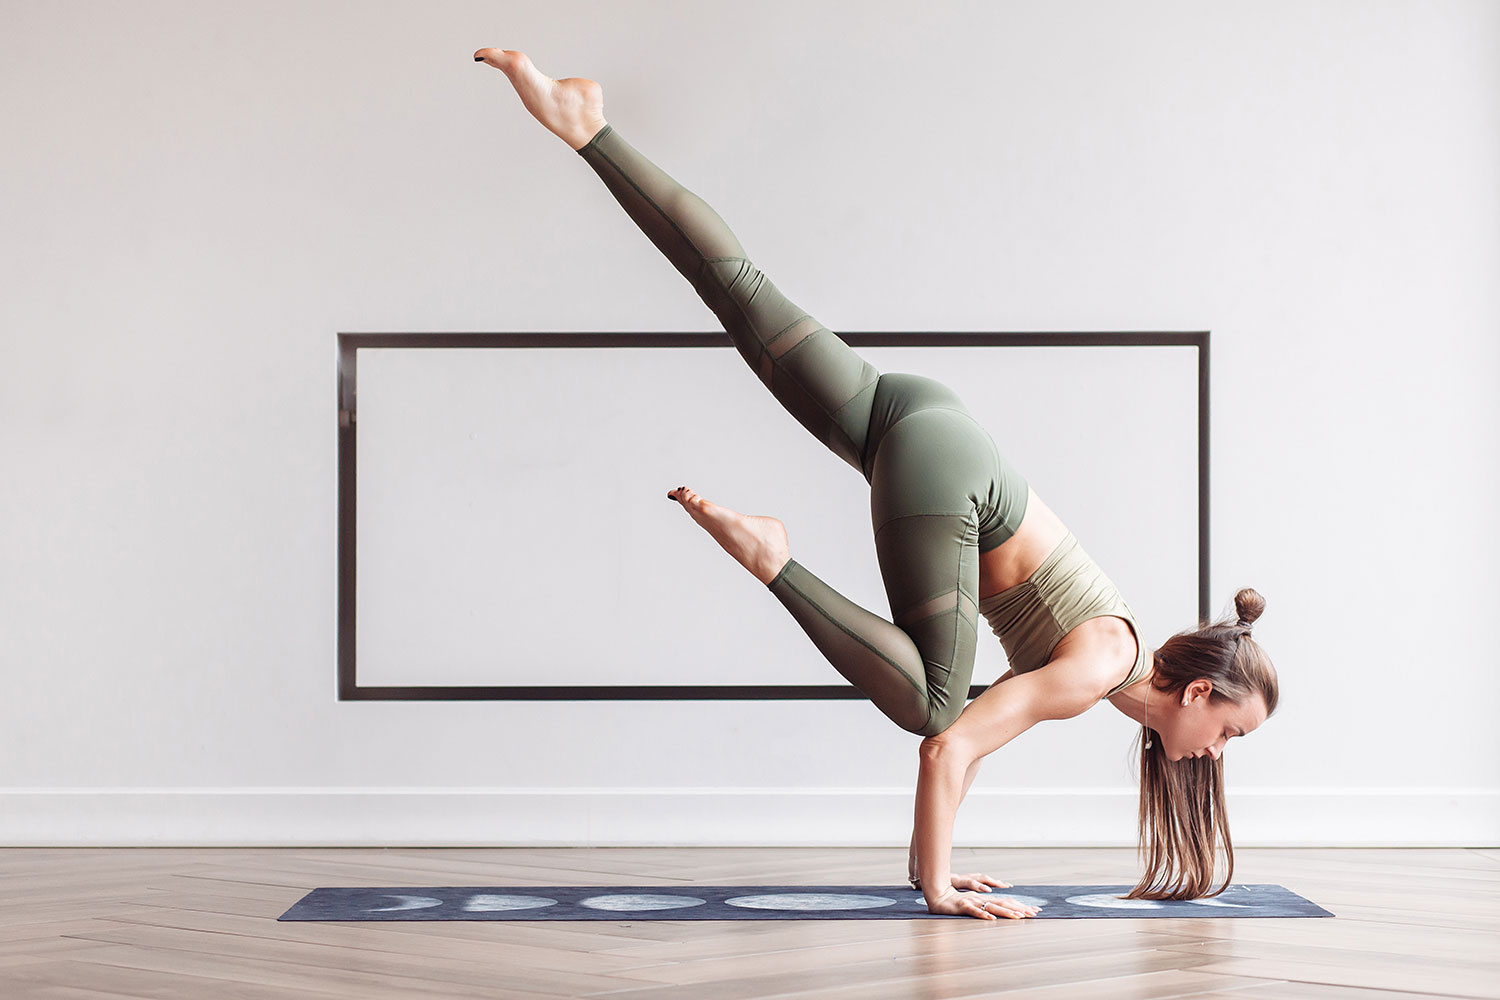 15 Reasons to Build Your Core Strength